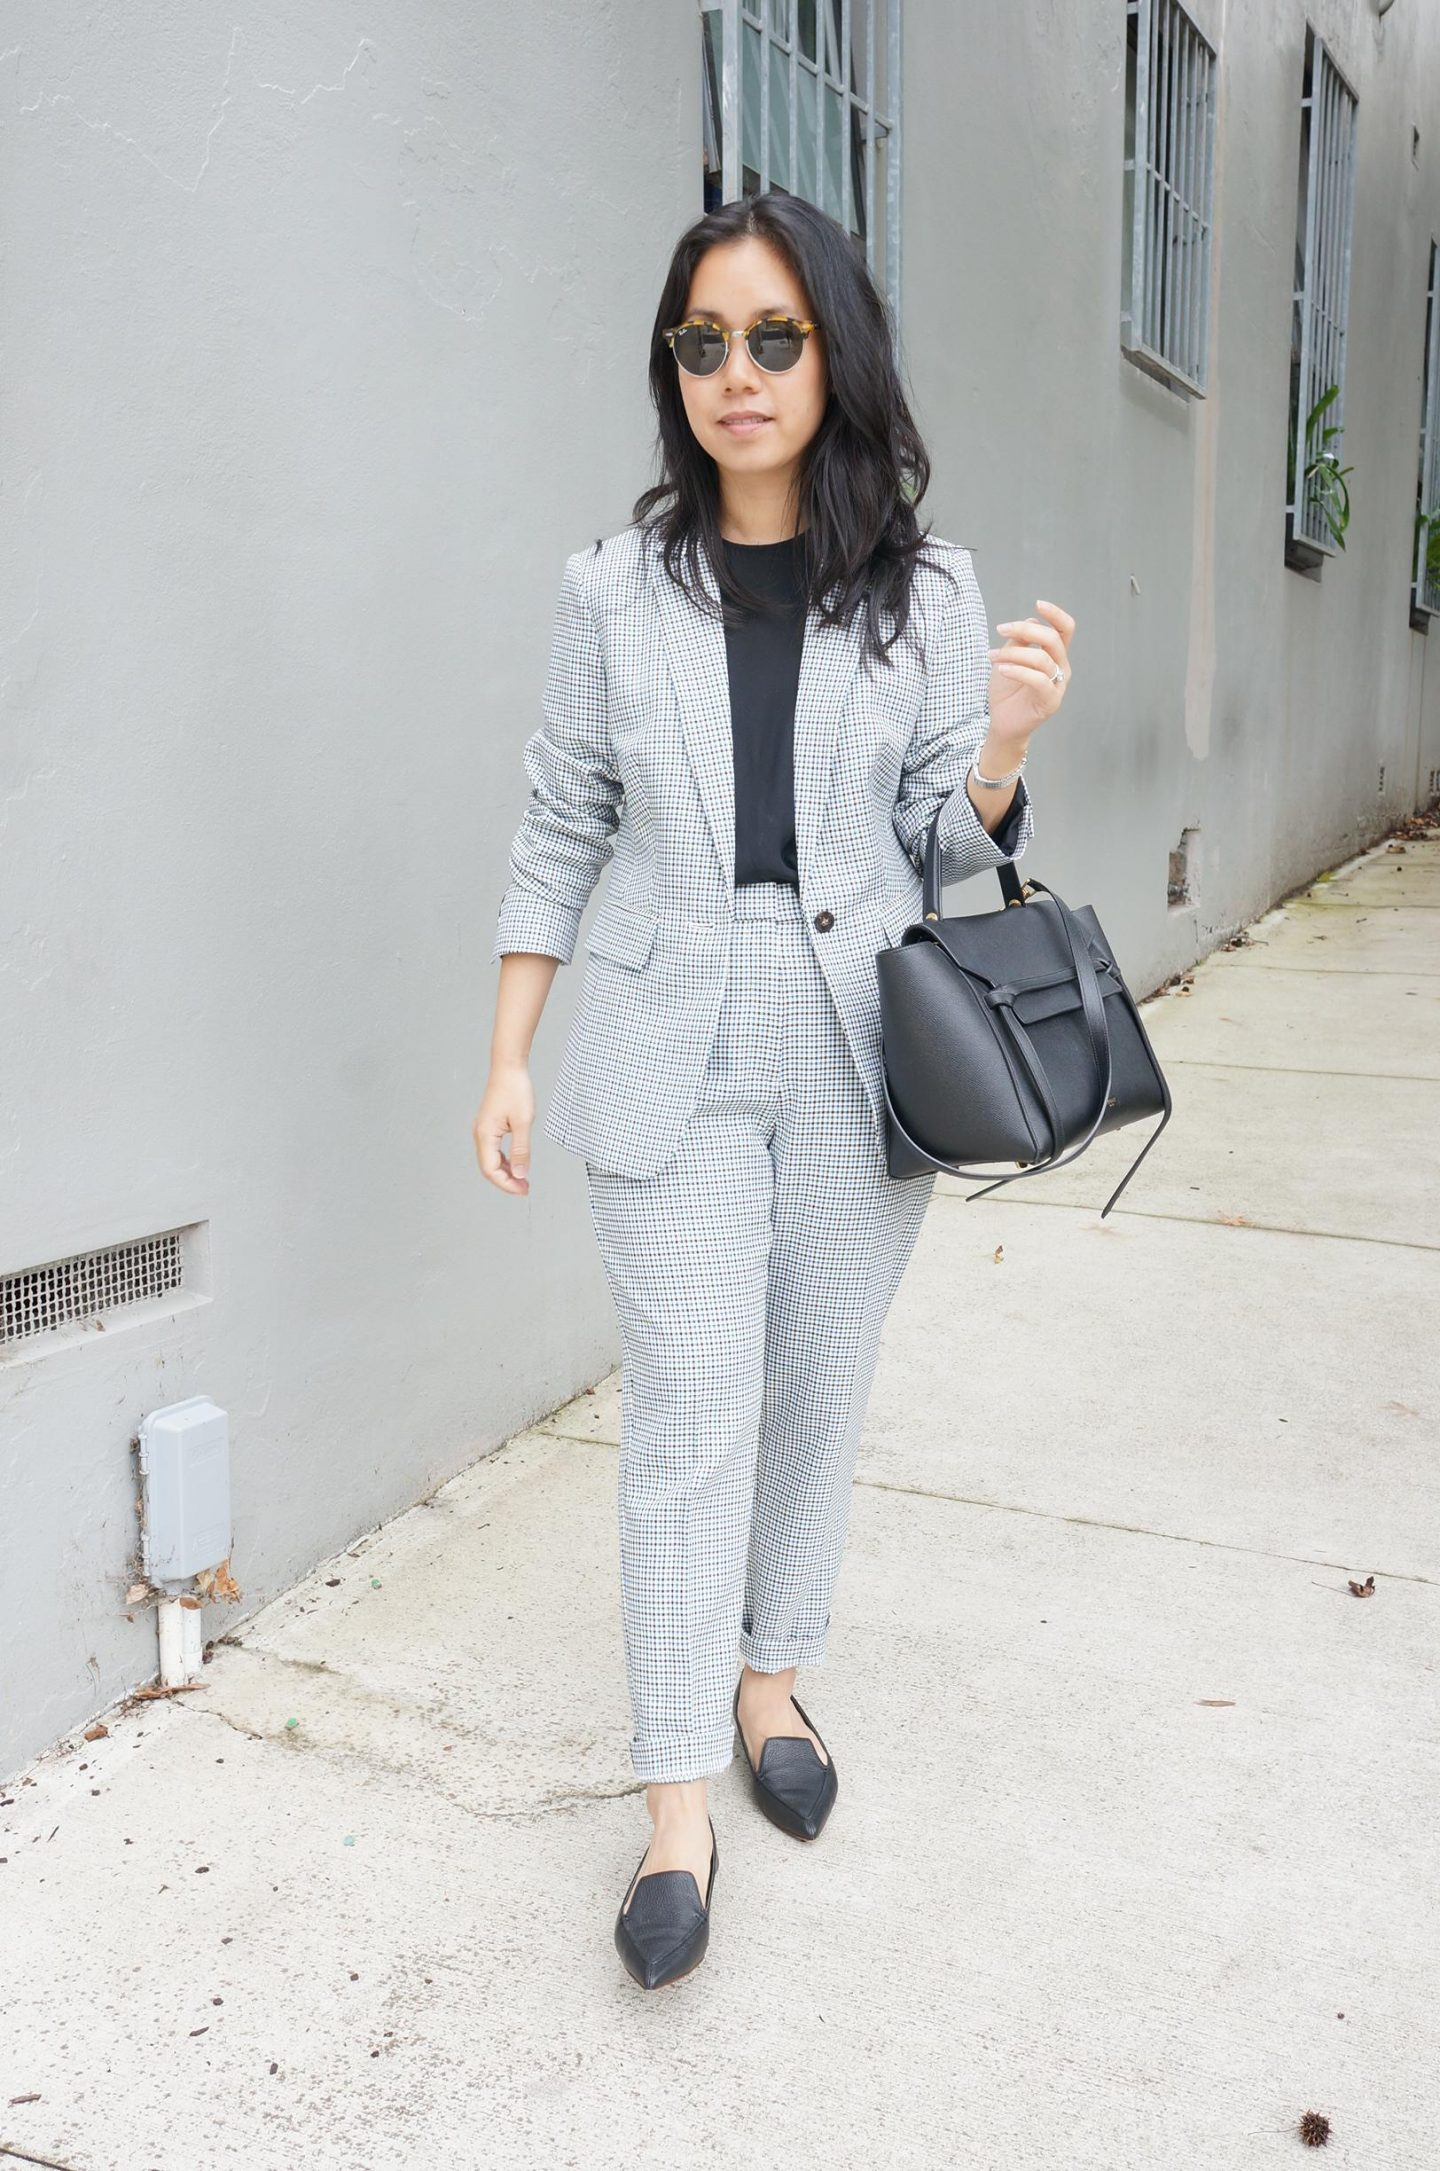 checked trouser suit in blog post about marks spencer workwear favourites